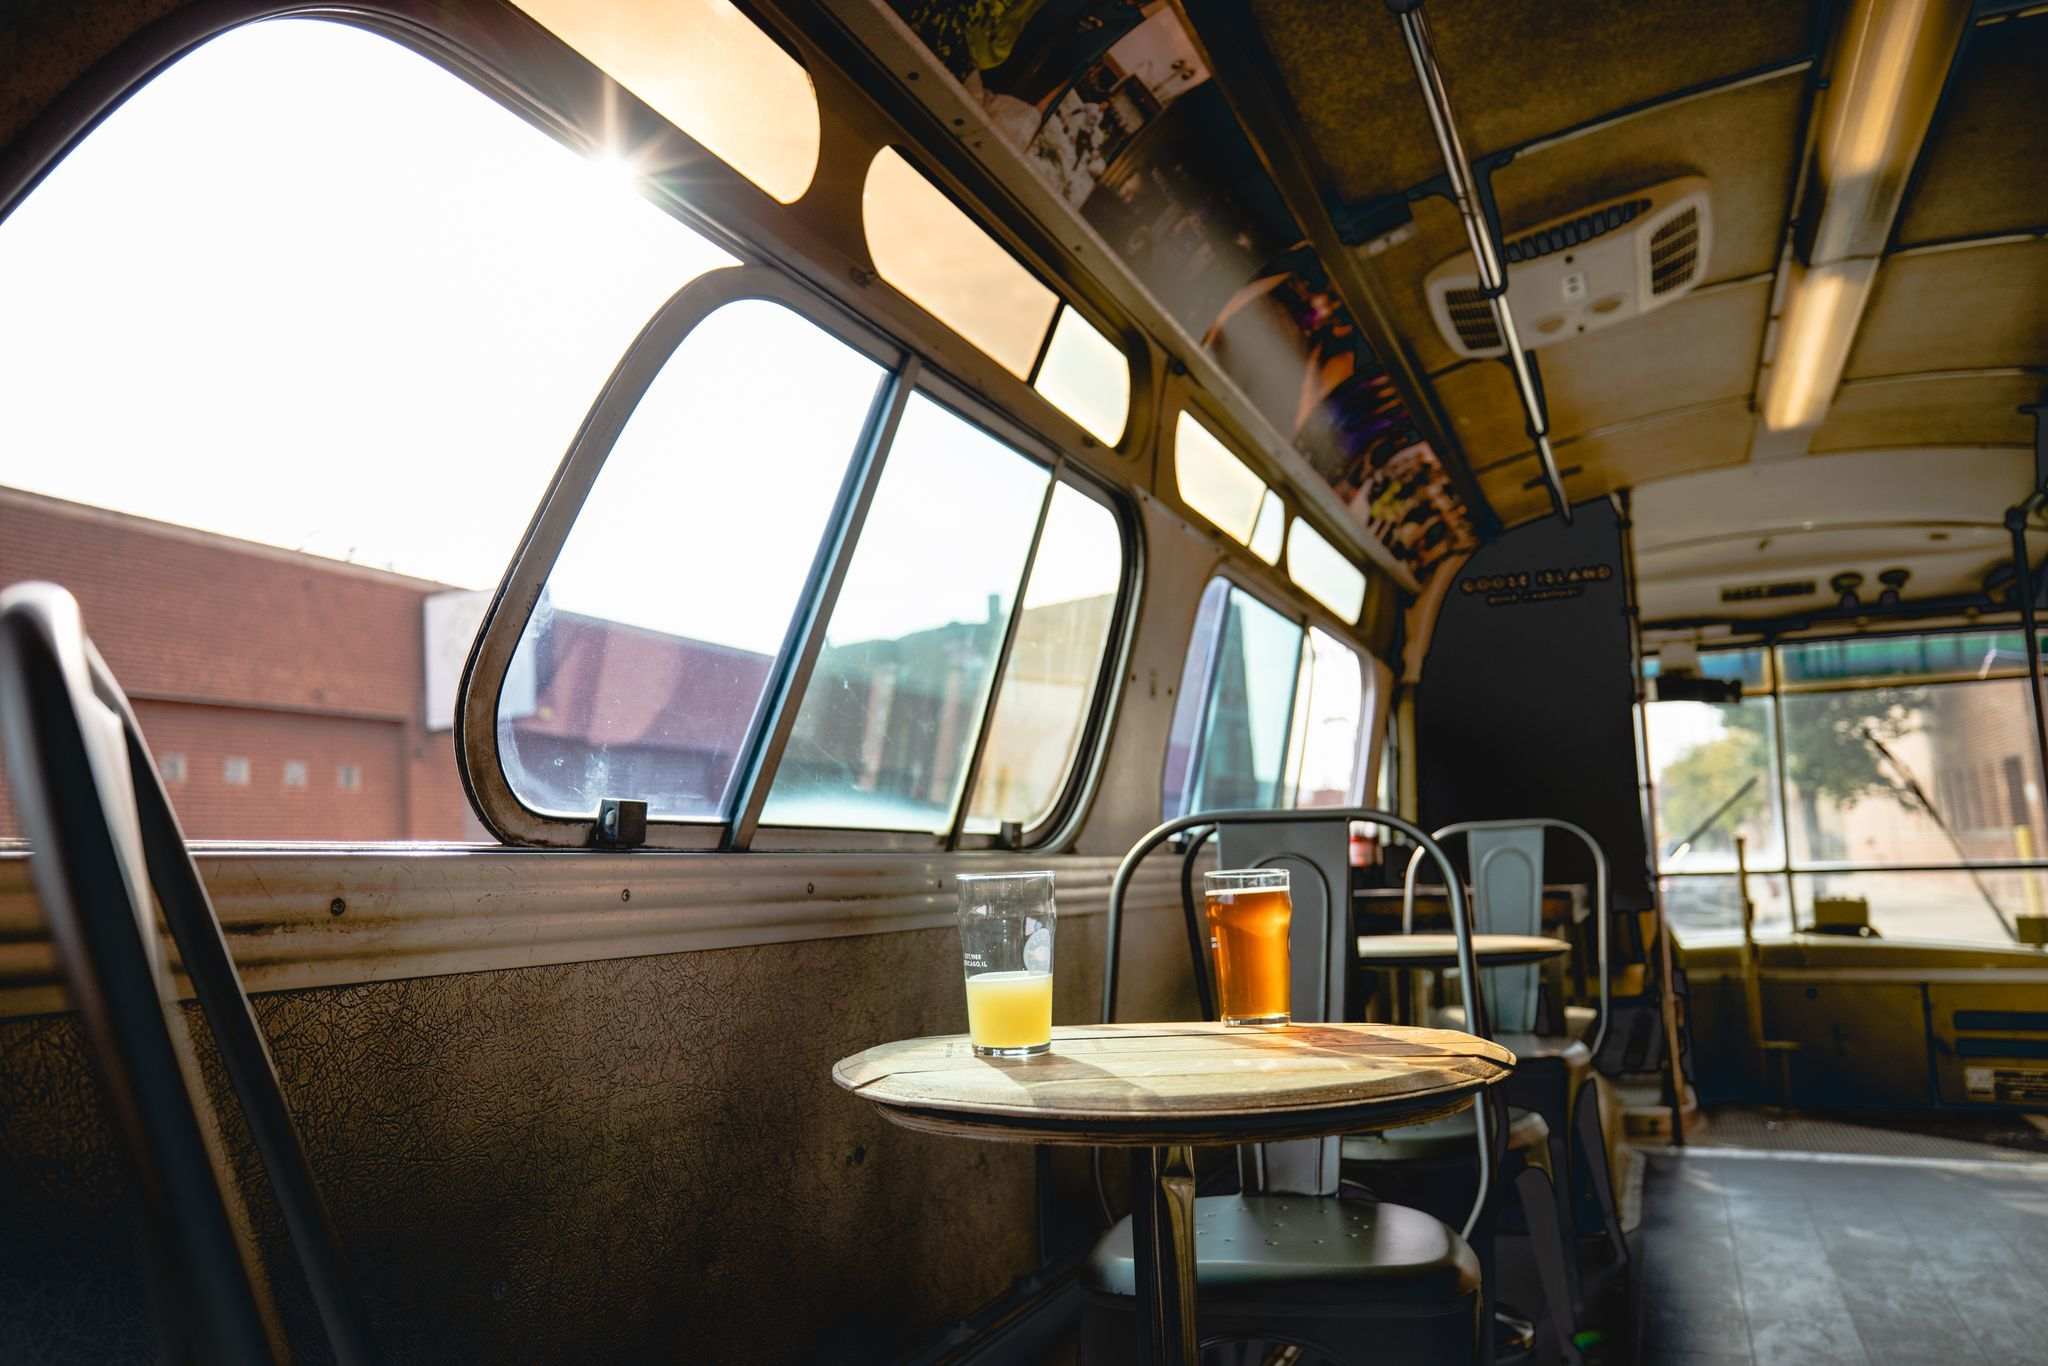 Goose Island has transformed a vintage CTA bus into a private drinking room